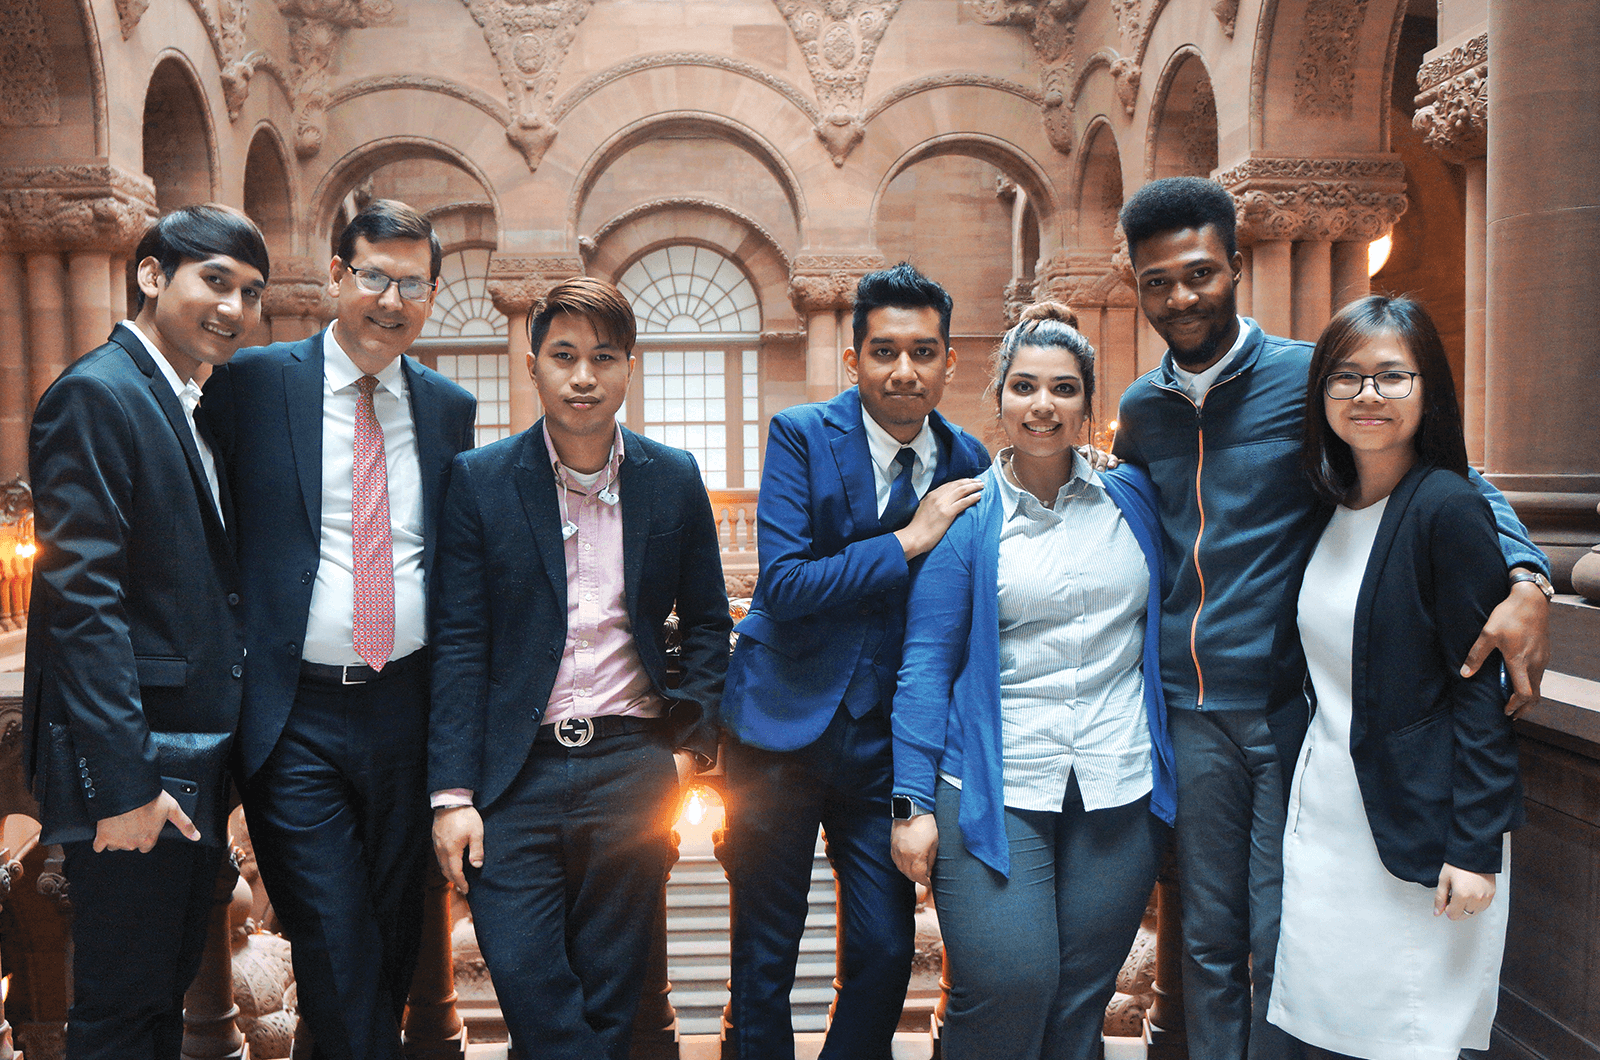 Jim Luce (second from left) visits the New York State capitol with members of the Young Global Leaders program to meet with state assembly members.